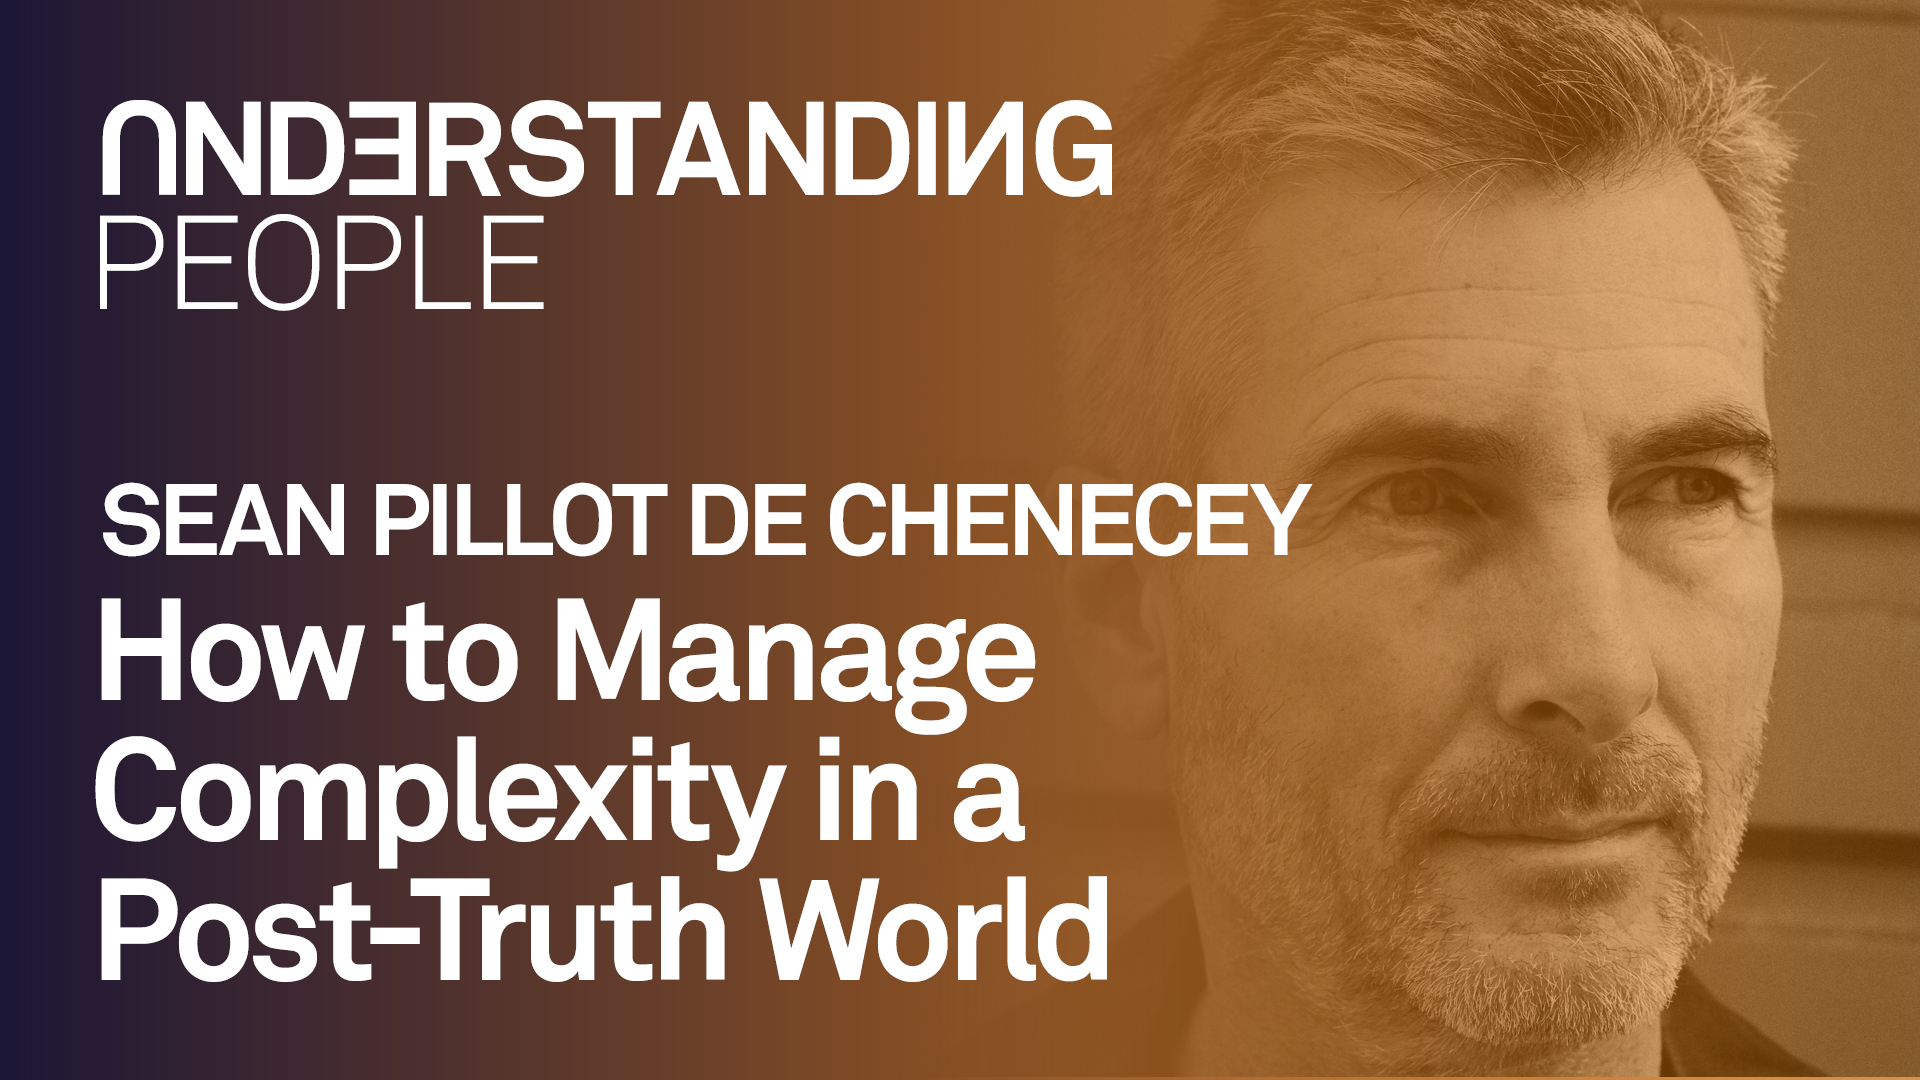 #gettogether: How to Manage Complexity in a Post-Truth World